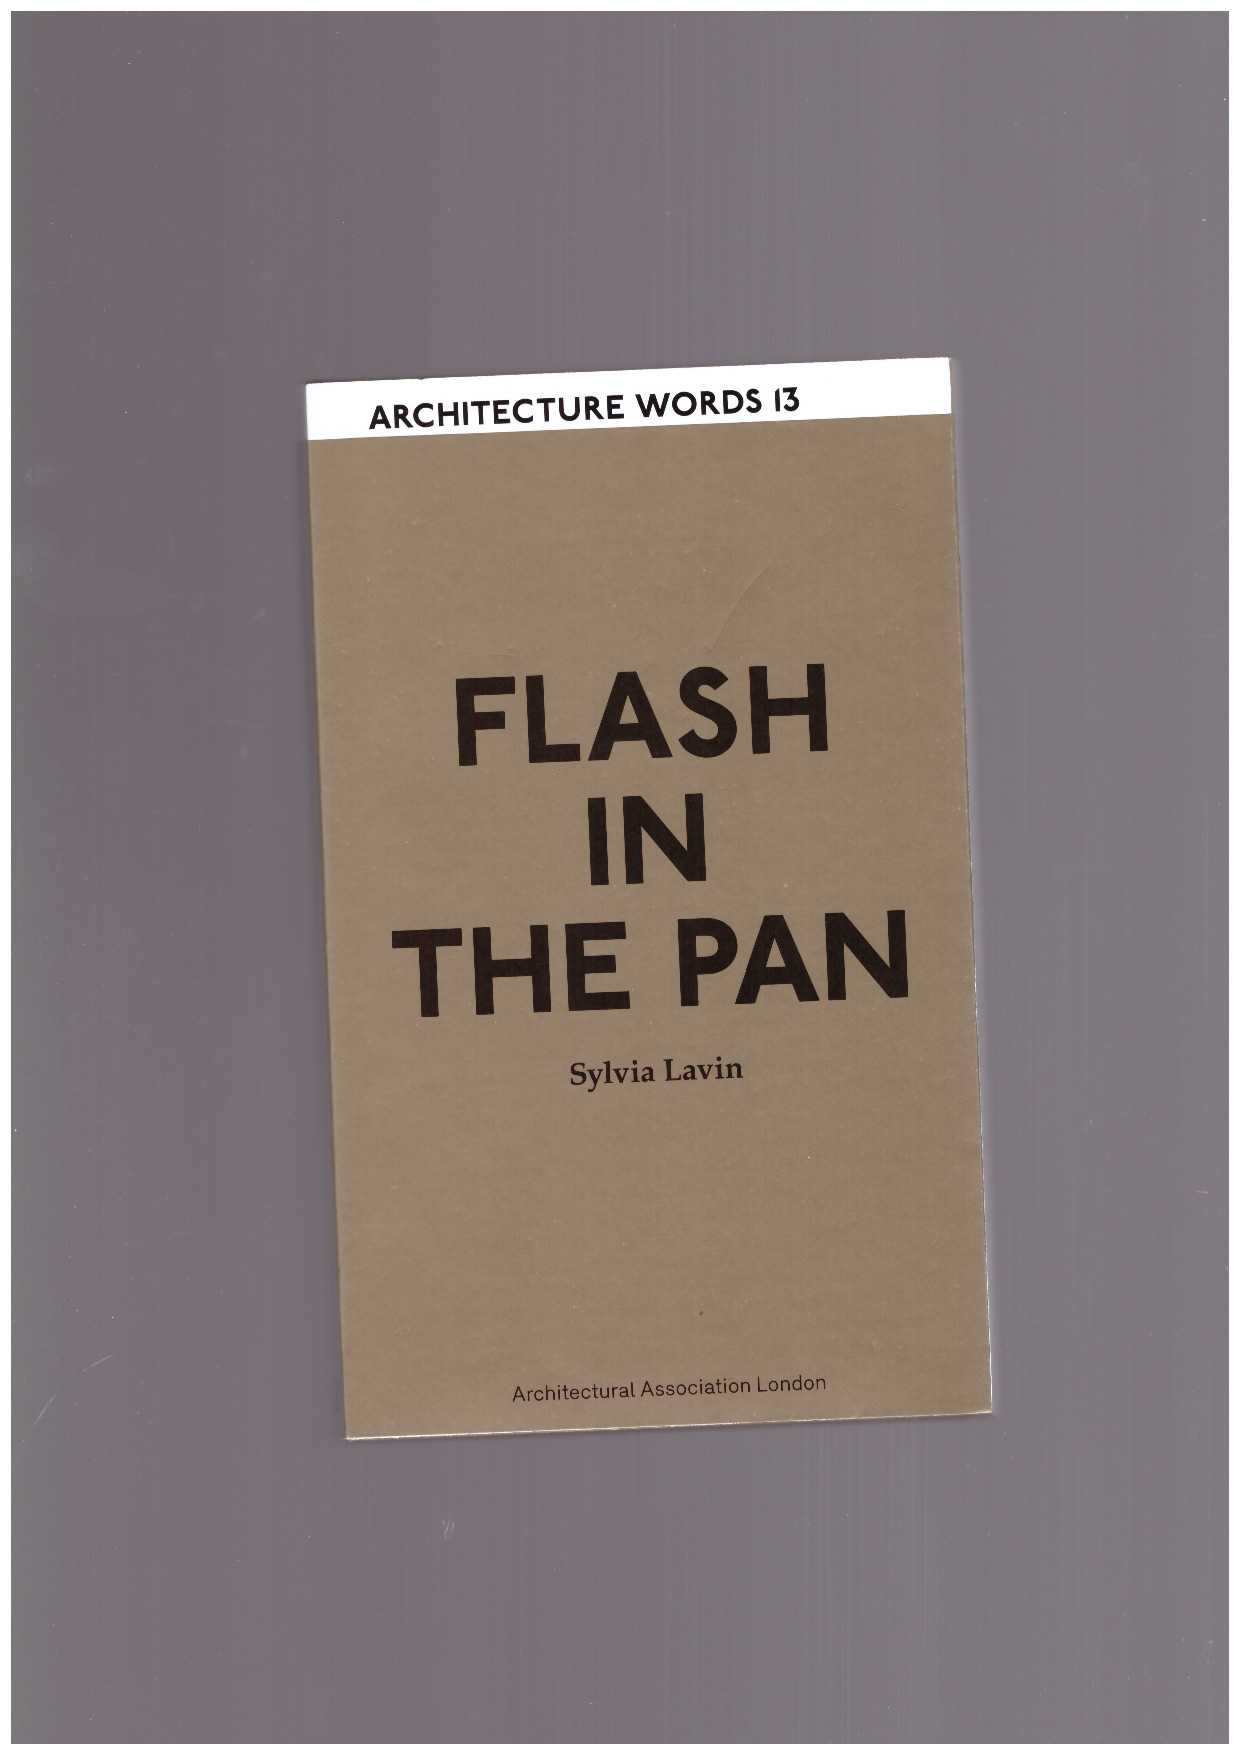 LAVIN, Sylvia - Flash in the pan